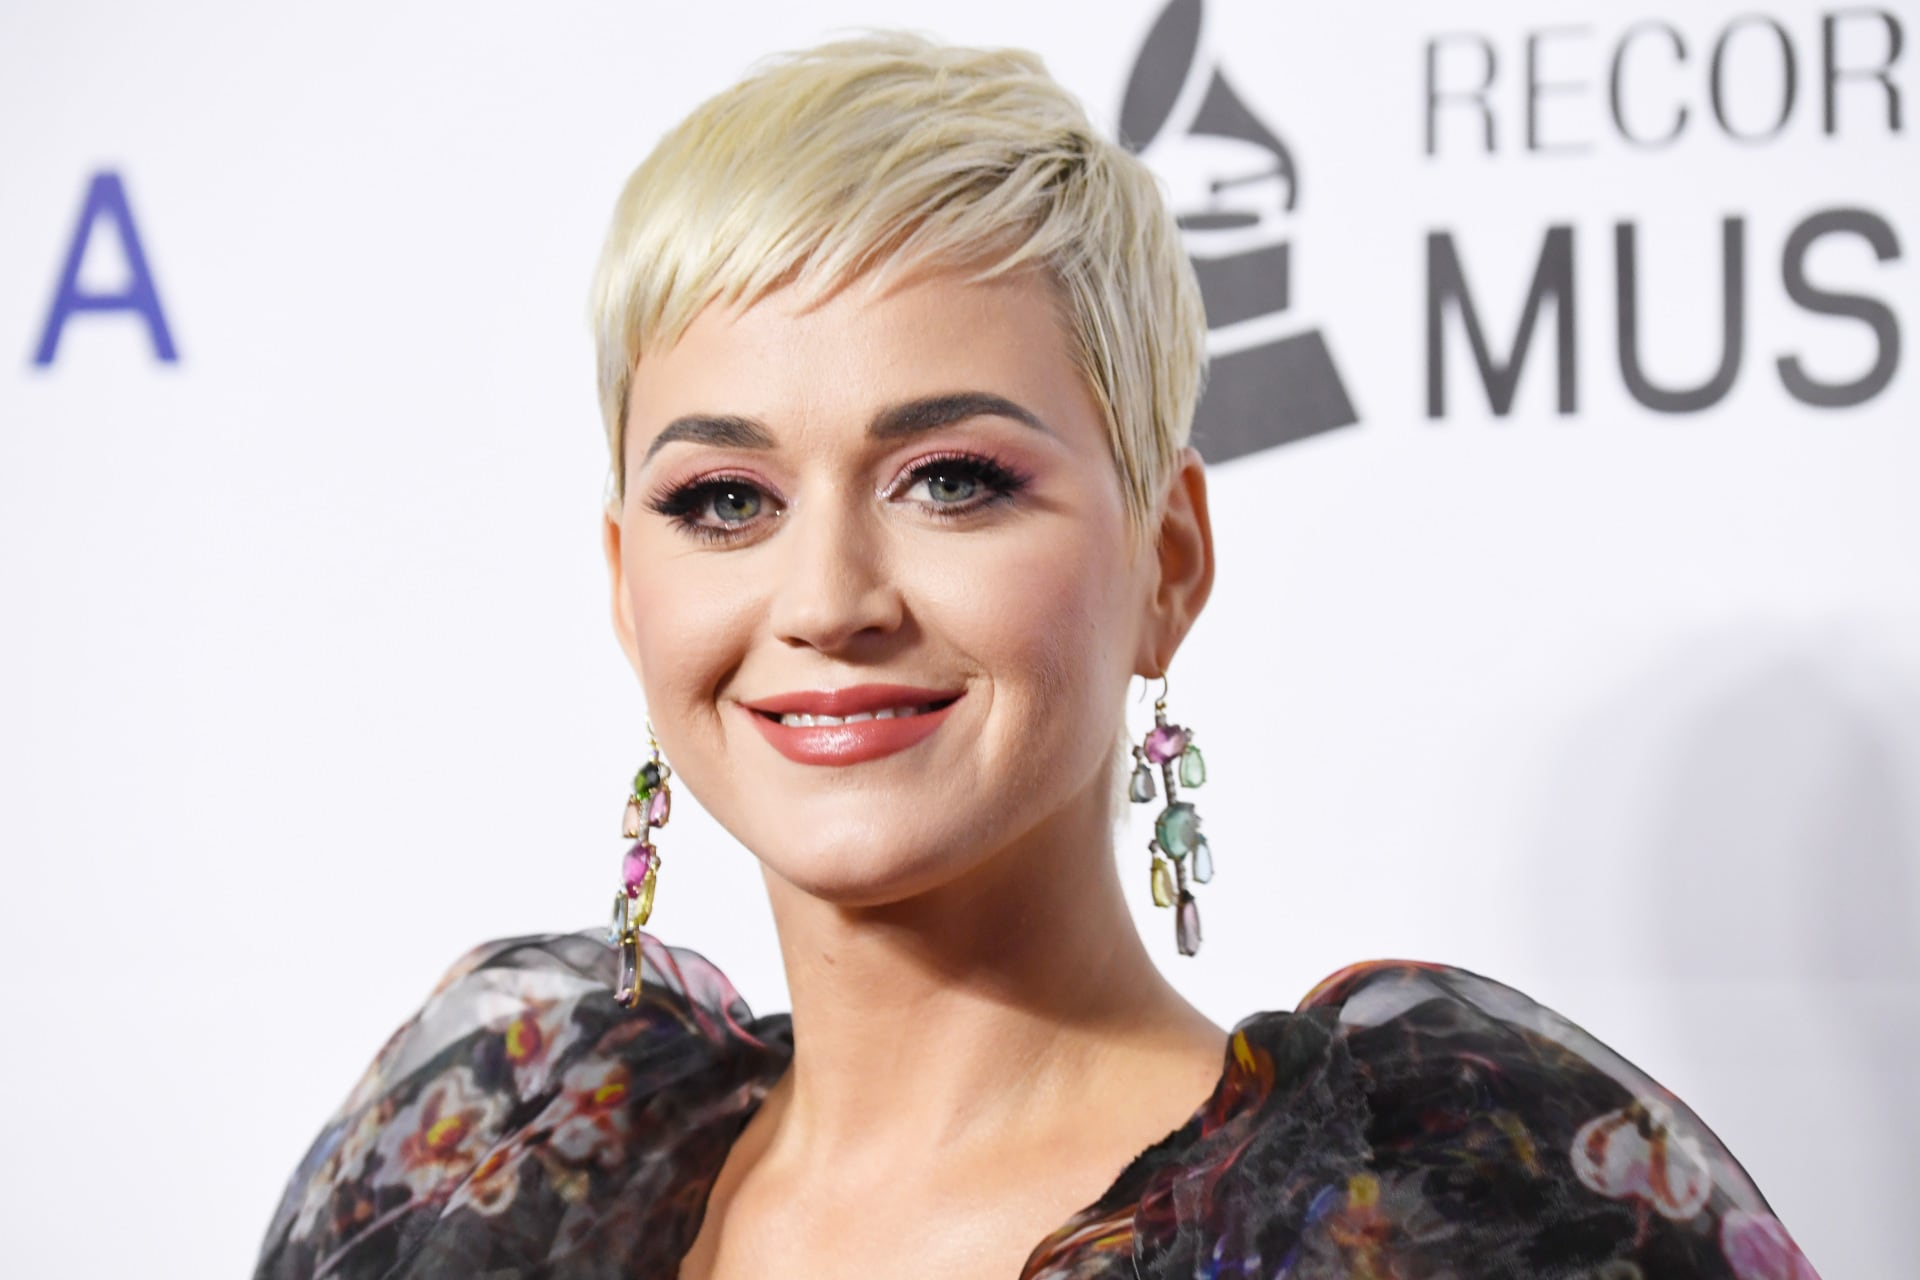 Inside the Hollywood Hills home Katy Perry just sold